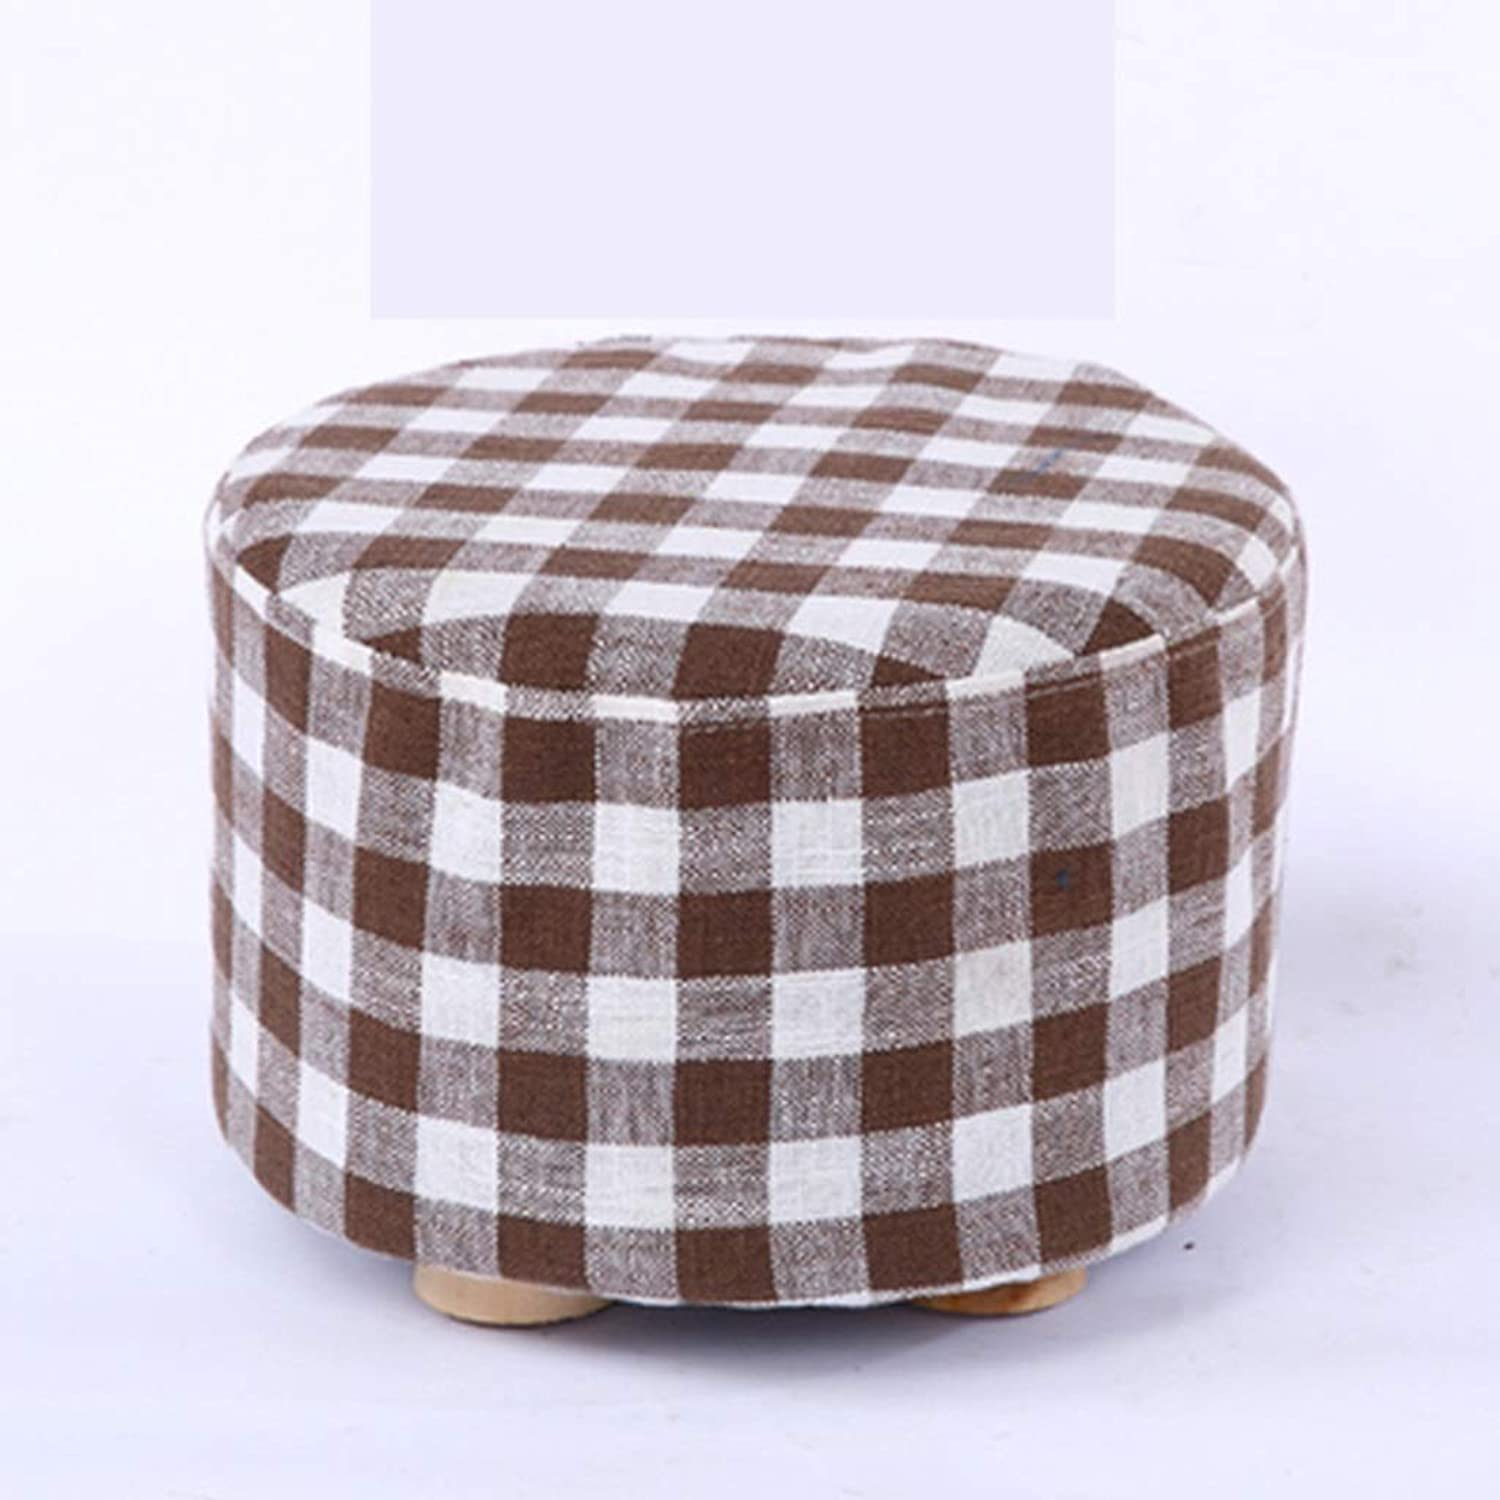 RHHWJJXB Cloth Stool Home Creative Stool Seat Small Bench Fashion Sofa Stool Solid Wood Stool Stool Coffee Table Without Legs (color   E)